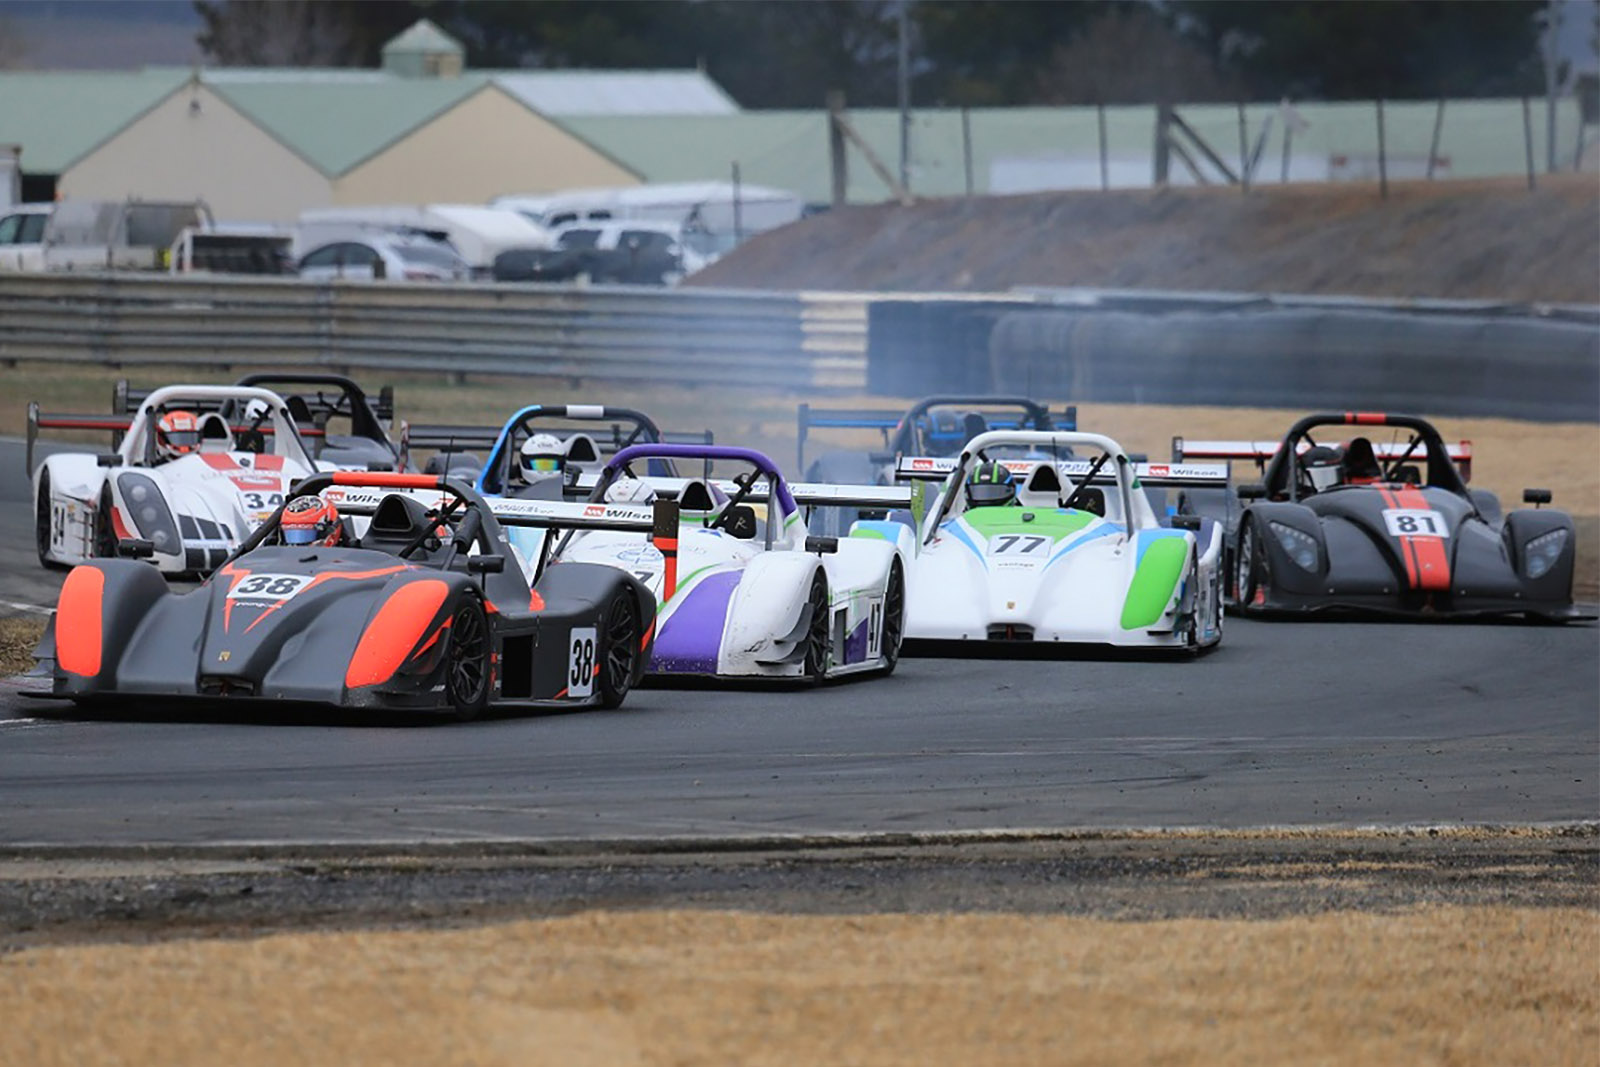 Big weekend at Wakefield Park for Radical regulars